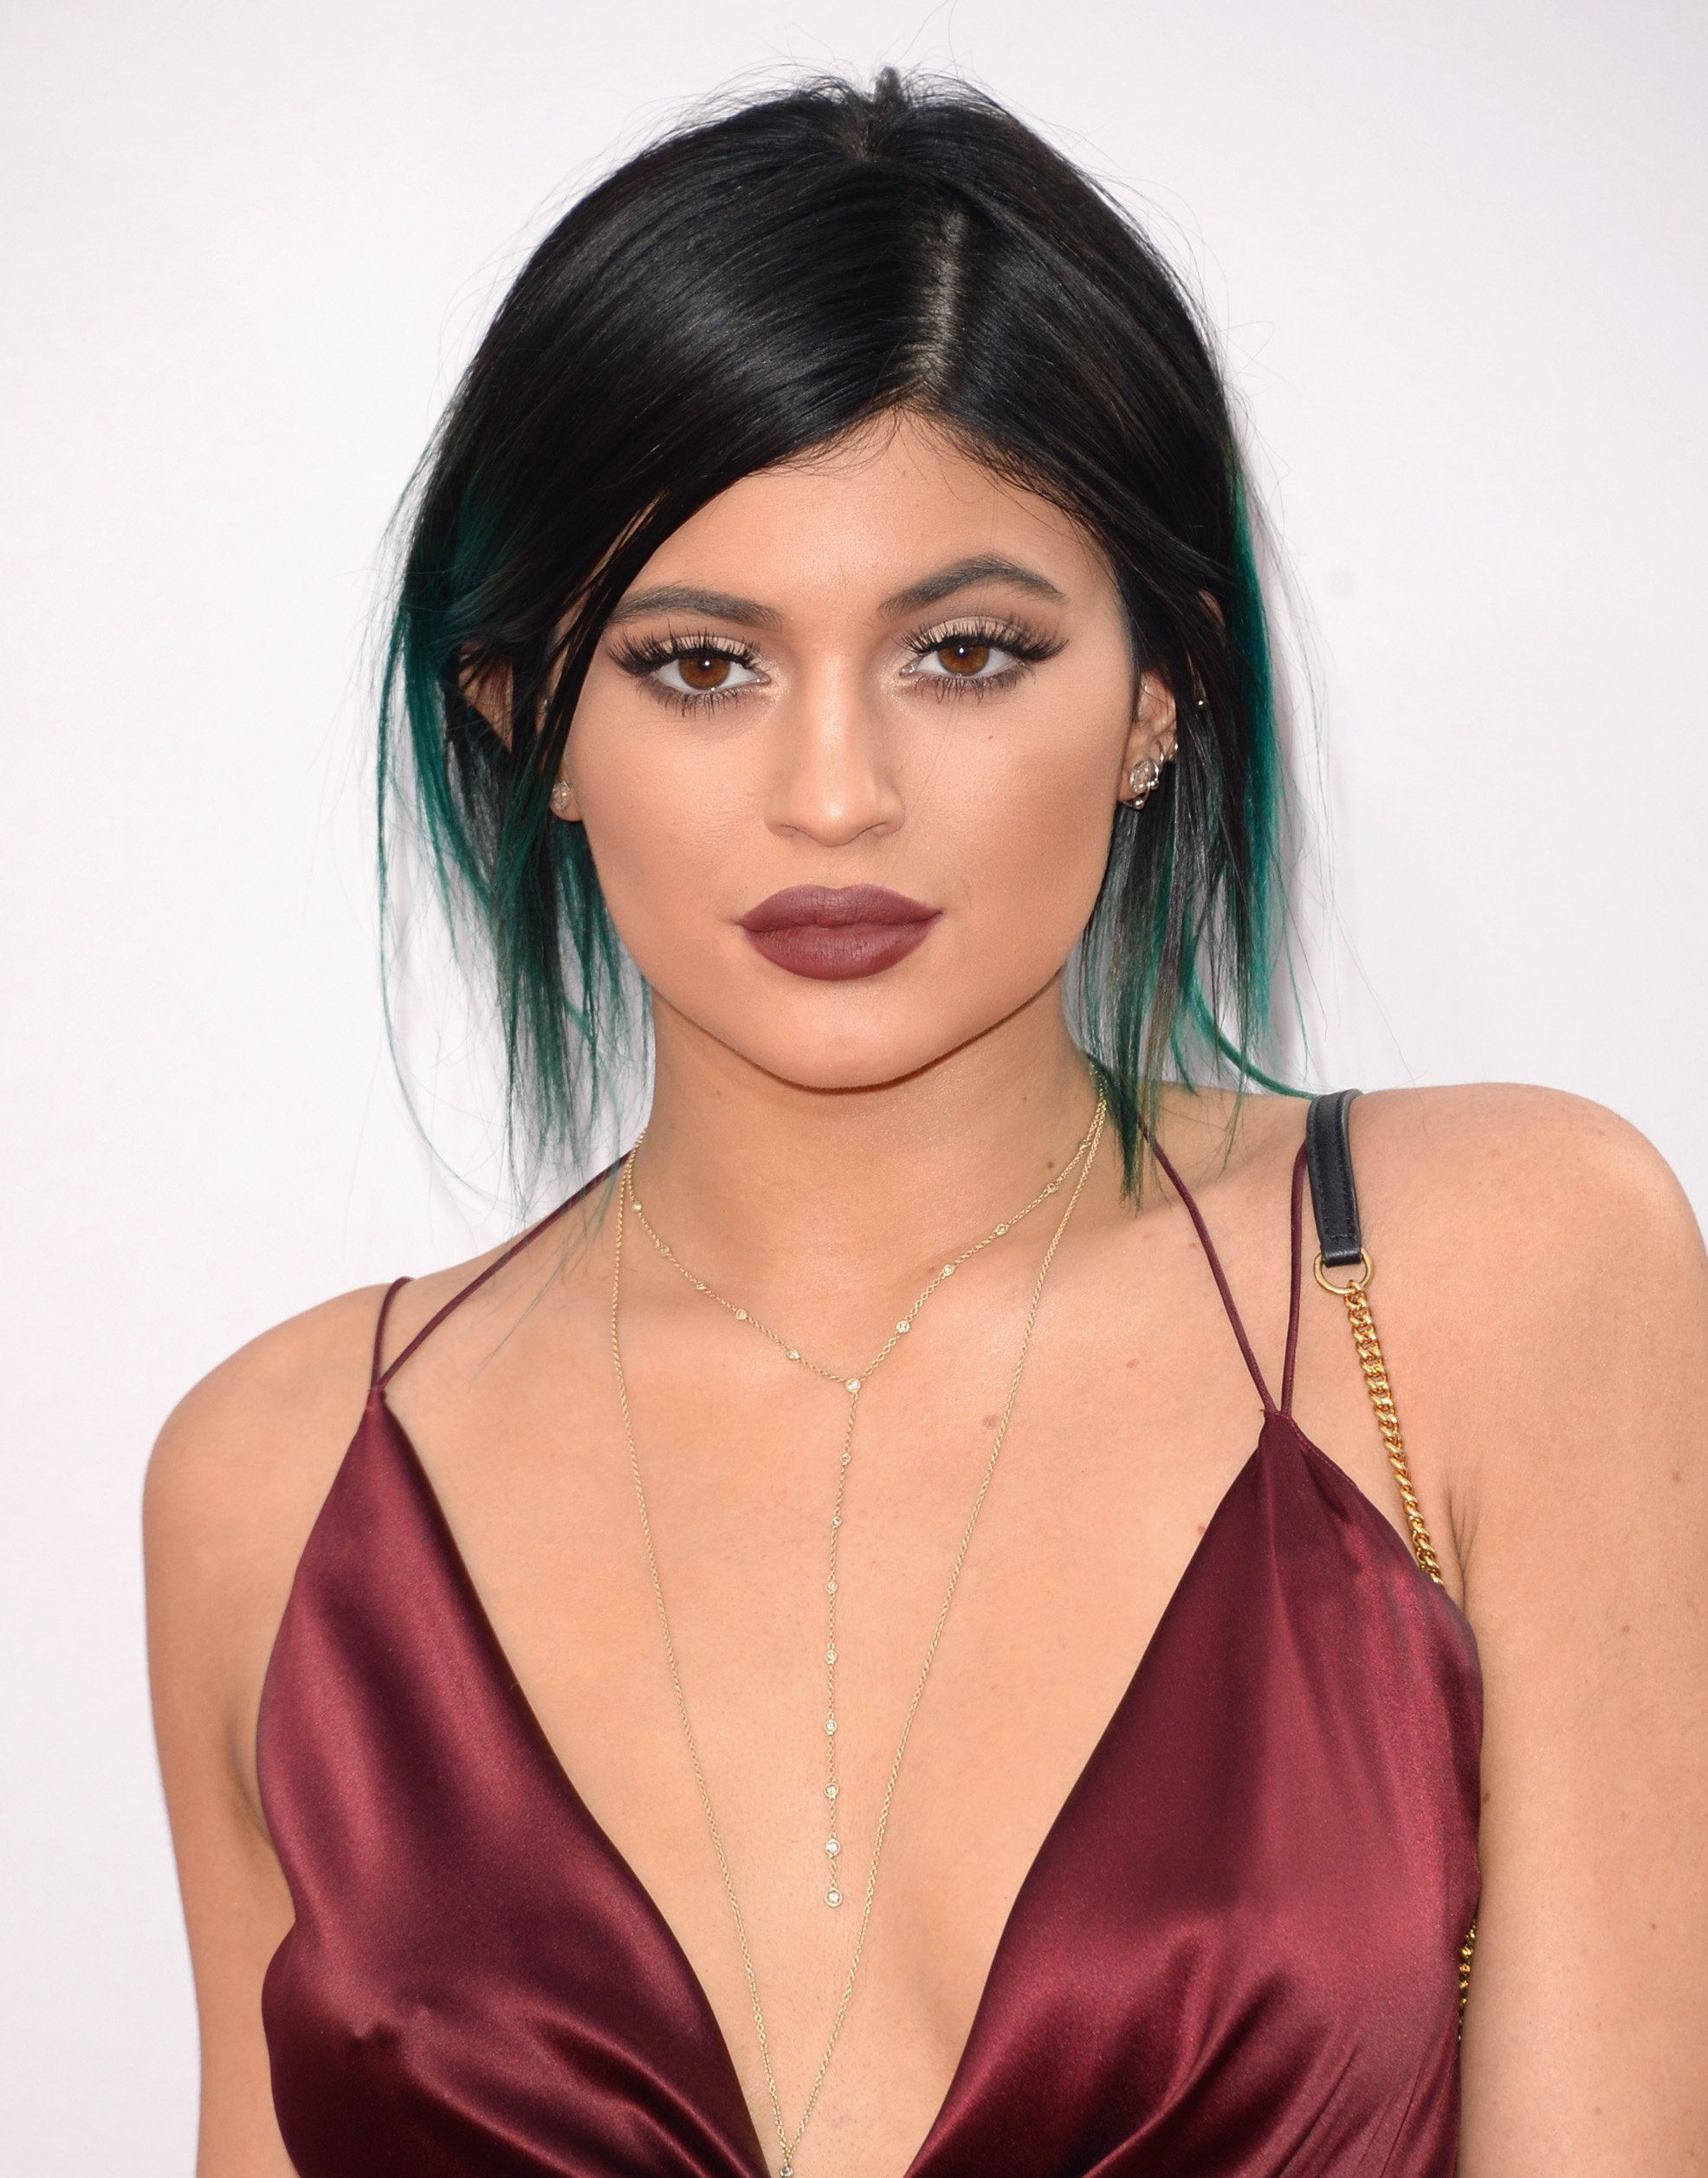 LOS ANGELES, CA - NOVEMBER 23:  Model Kylie Jenner attends the 2014 American Music Awards at Nokia Theatre L.A. Live on November 23, 2014 in Los Angeles, California.  (Photo by Jason Merritt/Getty Images)